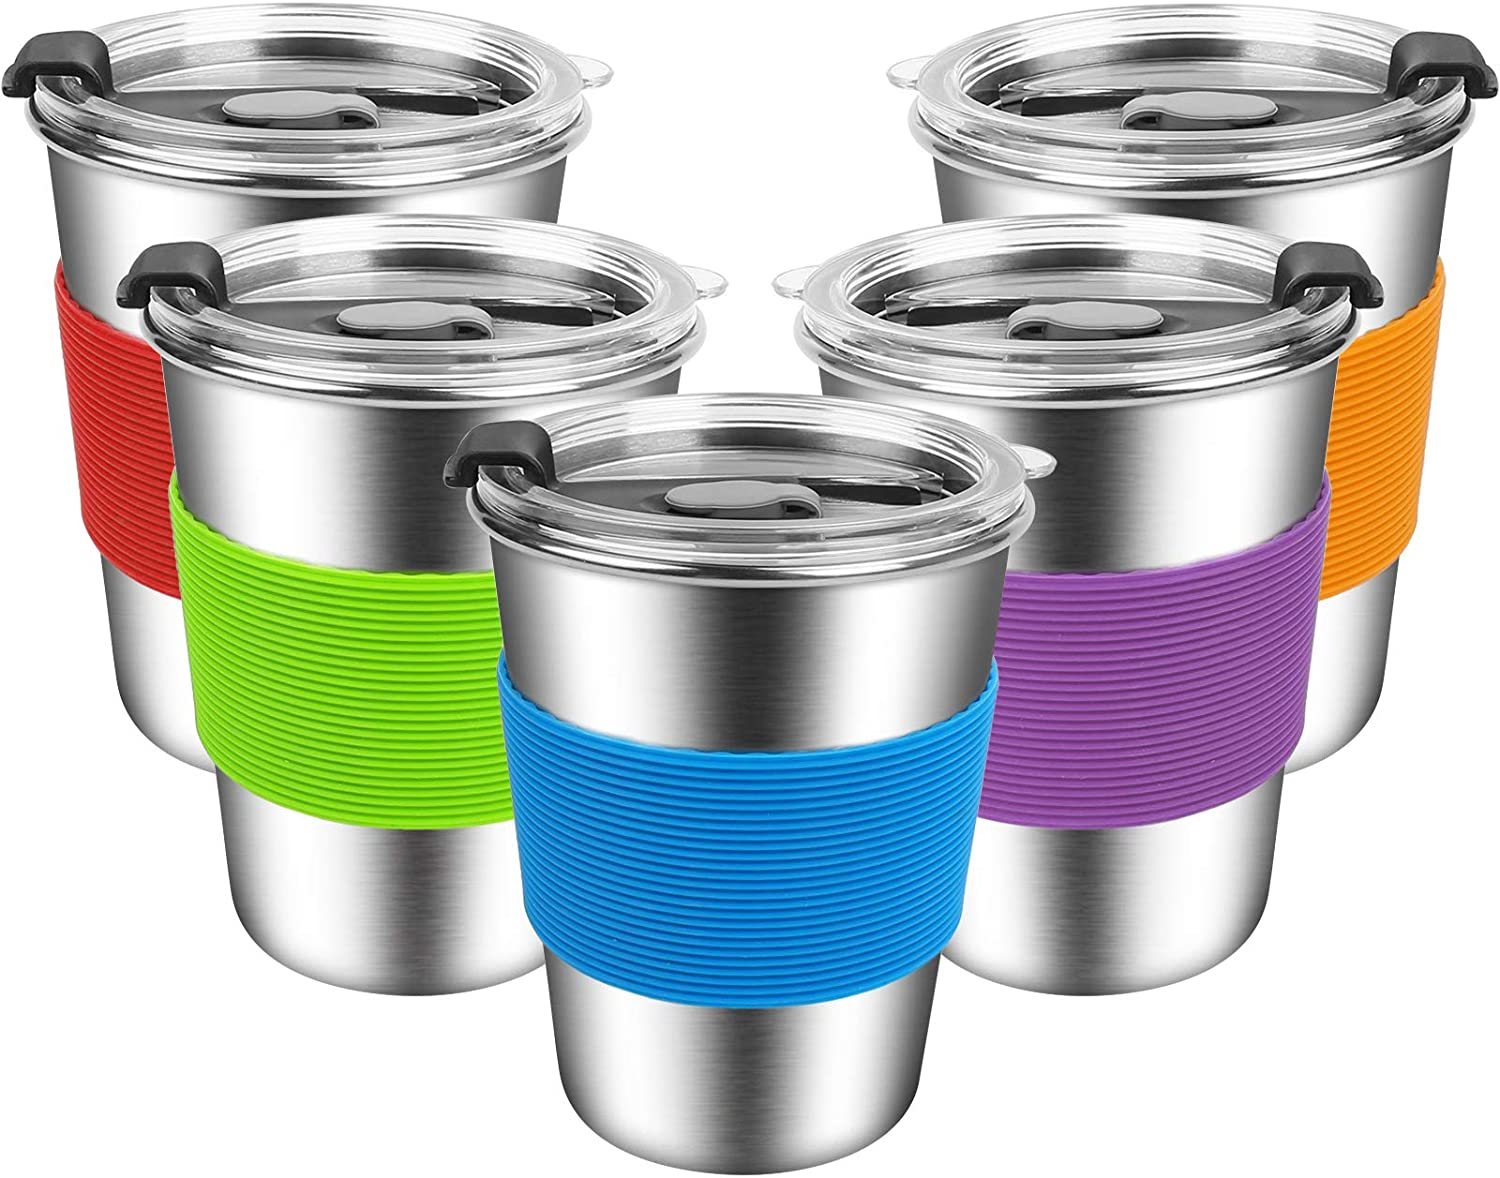 ShineMe Kids Stainless Steel Cups, Kids Metal Drinking Glasses with Lids and Sleeves, 12oz Reusable Water Tumbler for Children and Adults, Apply to Indoor and Outdoor (5 Pack 12 oz)